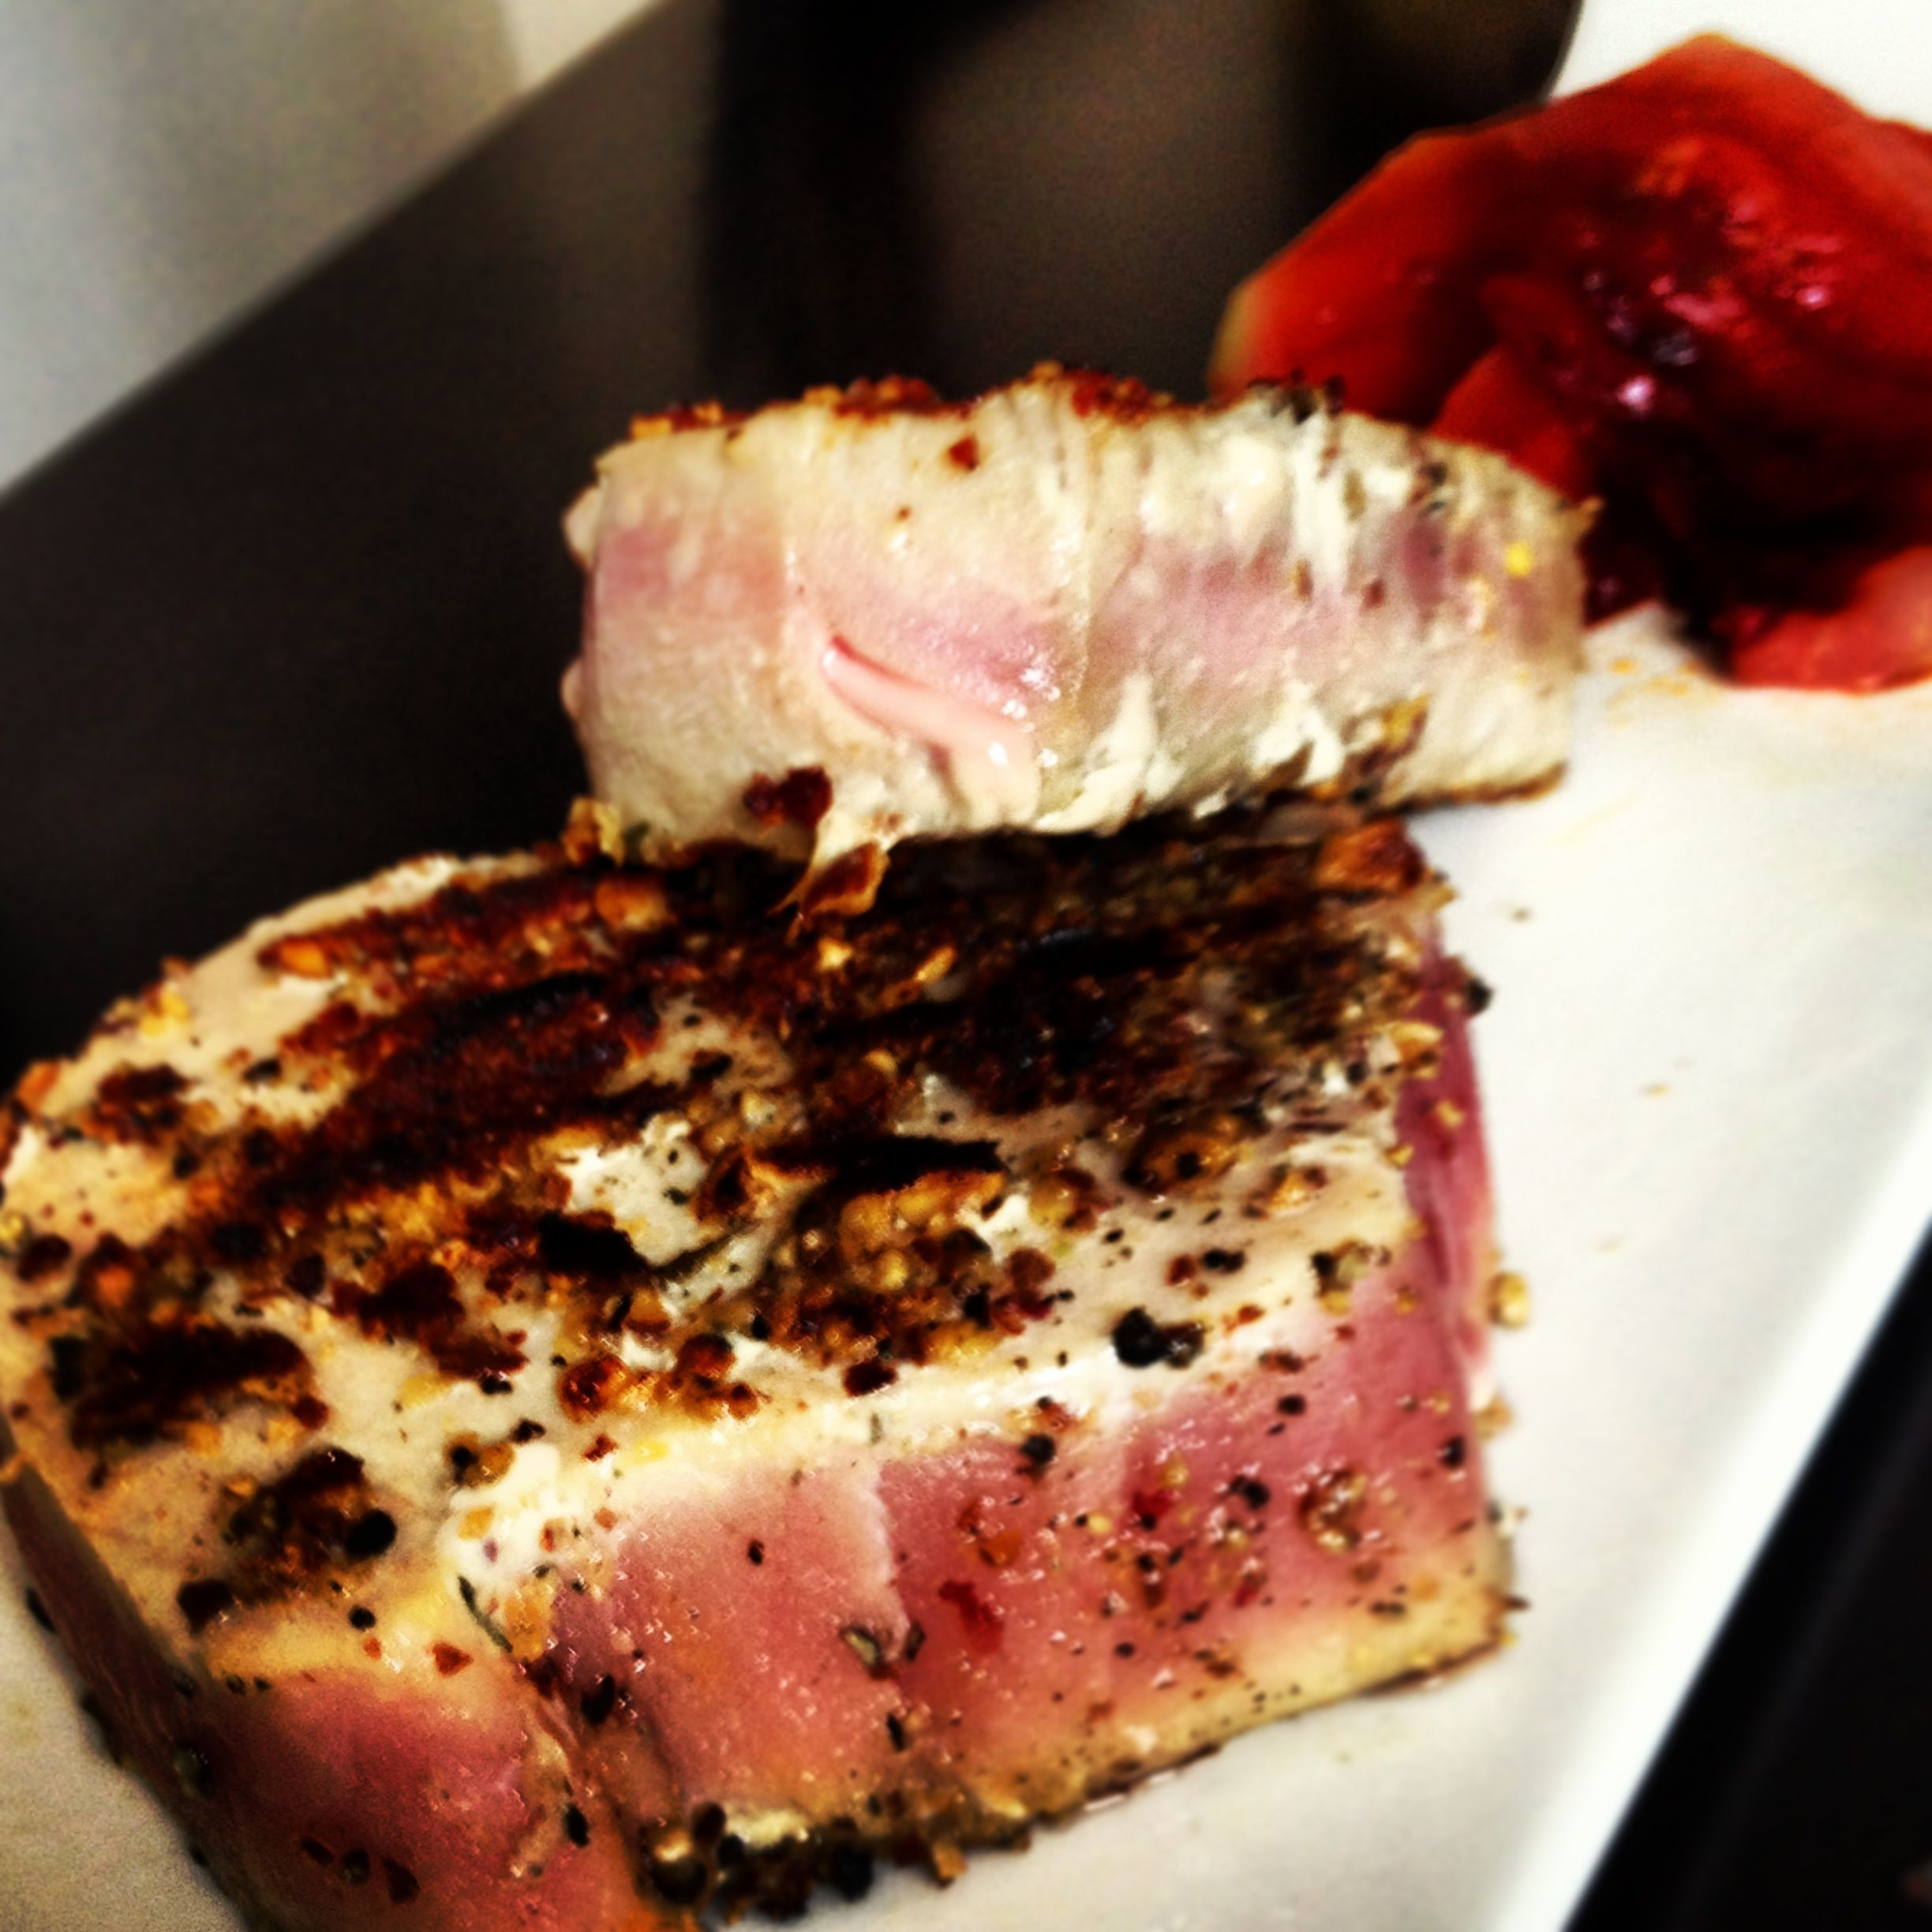 Grilled tuna and watermelon